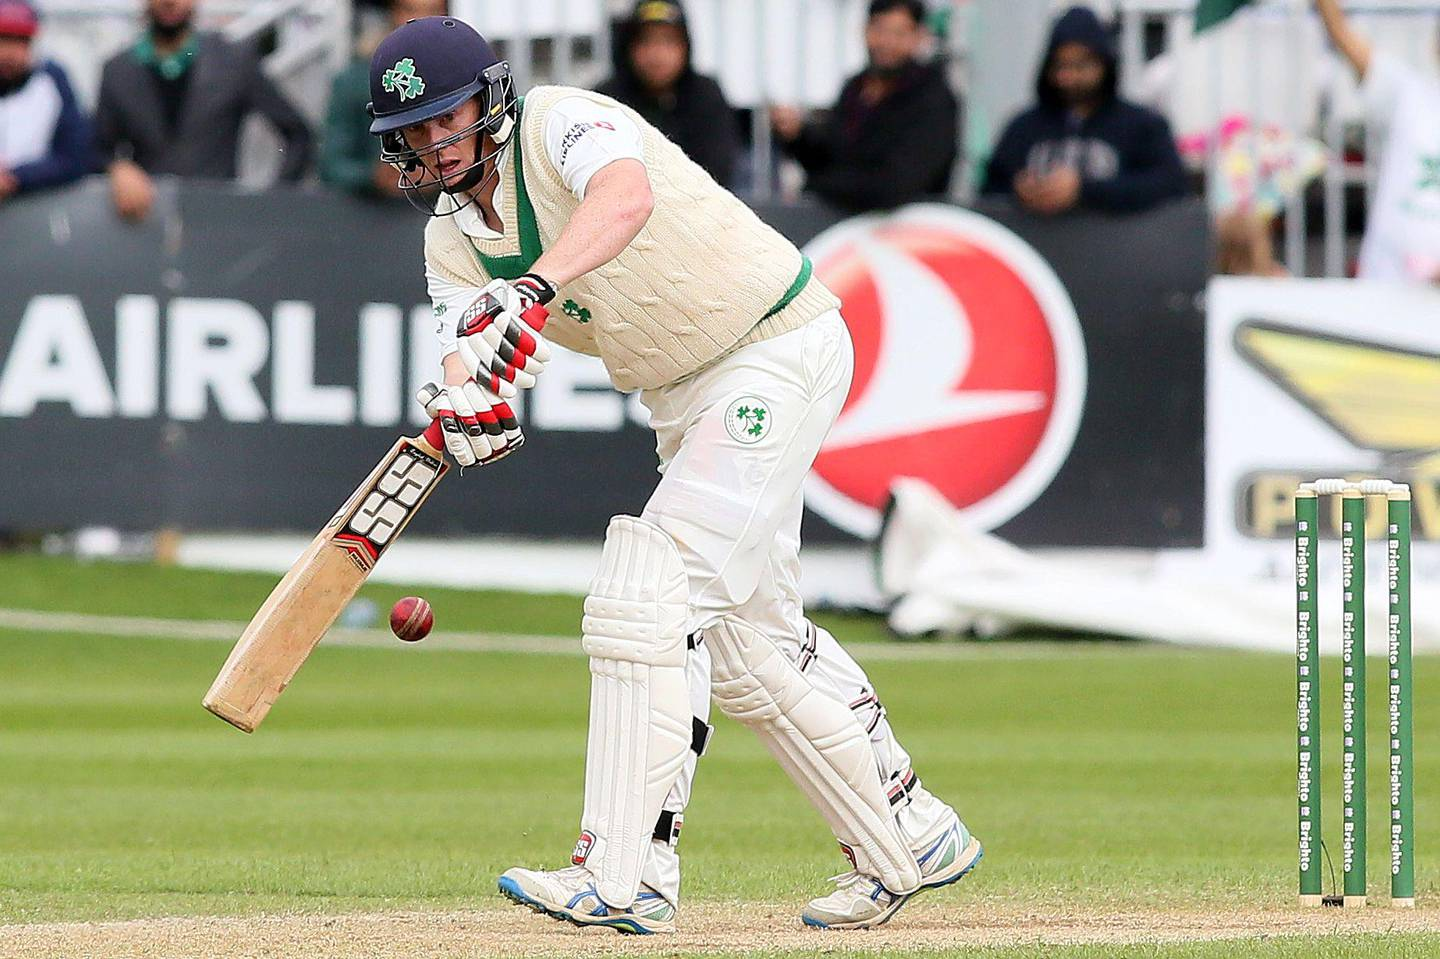 Ireland's Kevin O'Brien plays a shot on day four of Ireland's inaugural test match against Pakistan at Malahide cricket club, in Dublin on May 14, 2018.  / AFP / Paul FAITH